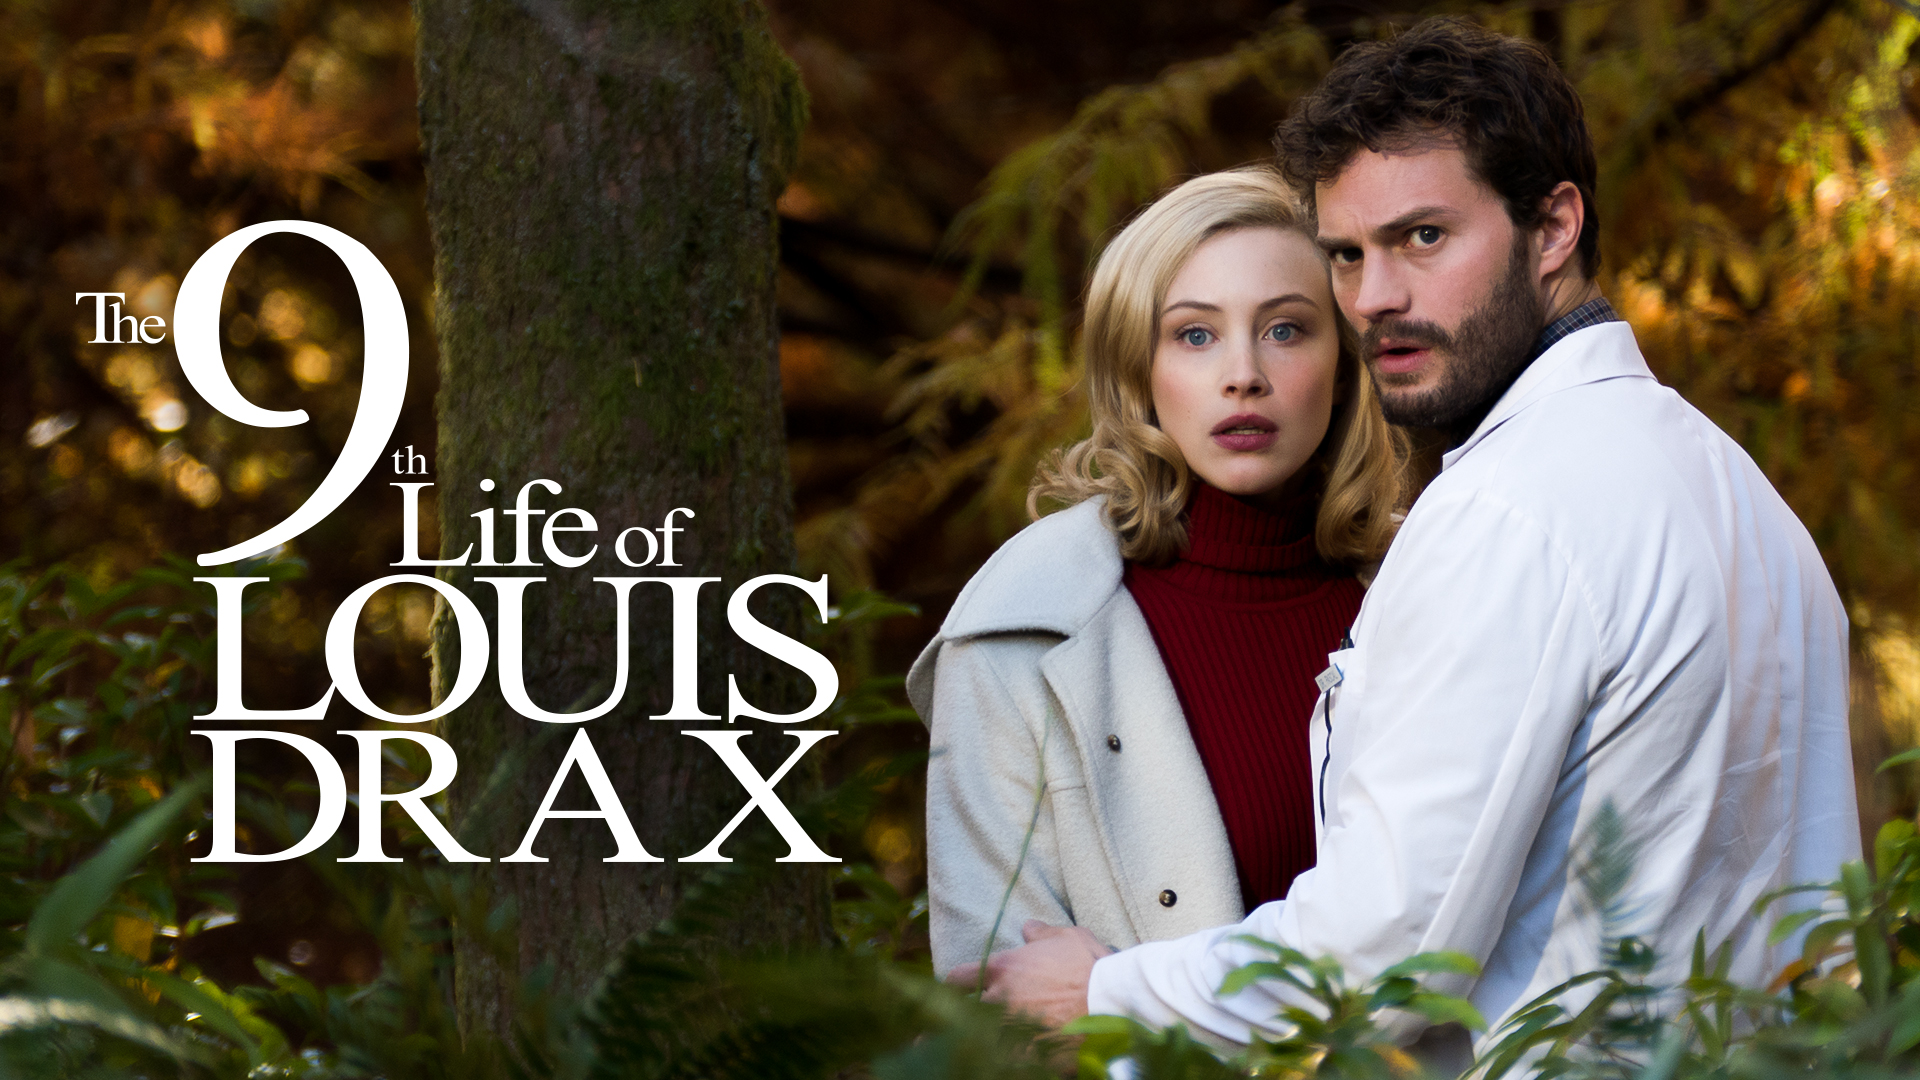 The 9th Life of Louis Drax - Official Trailer (HD)